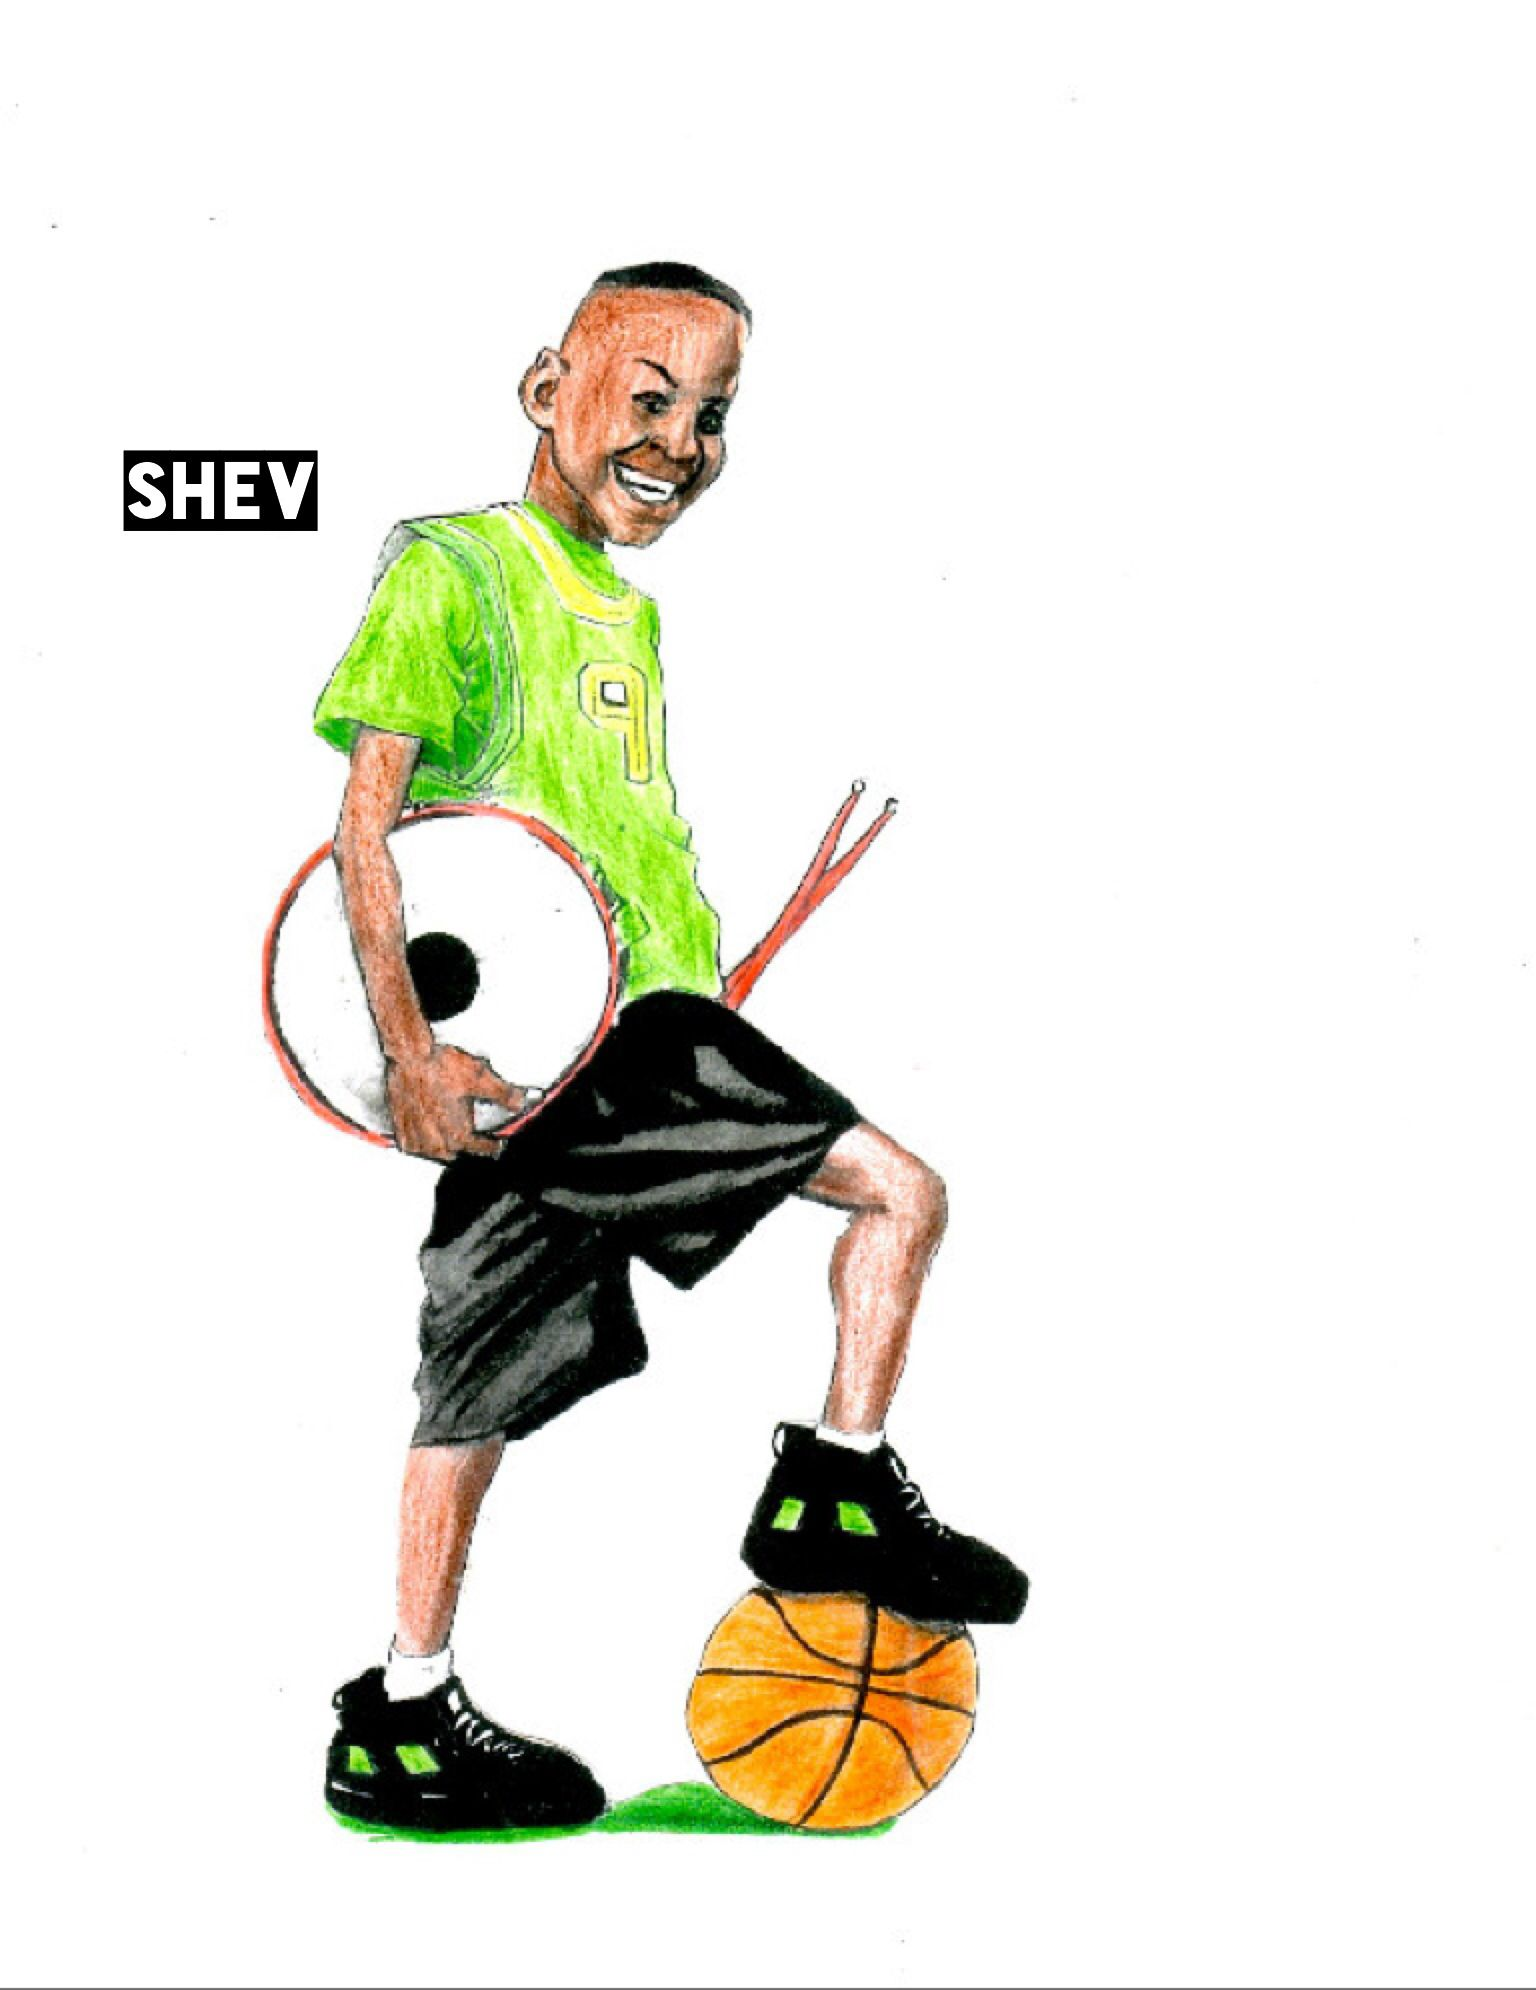 Hey it BassHitter and Friends! I'm ShevTheProducer. Call me Shev! Ck it out. http://youtu.be/RTmdS8u7e1g